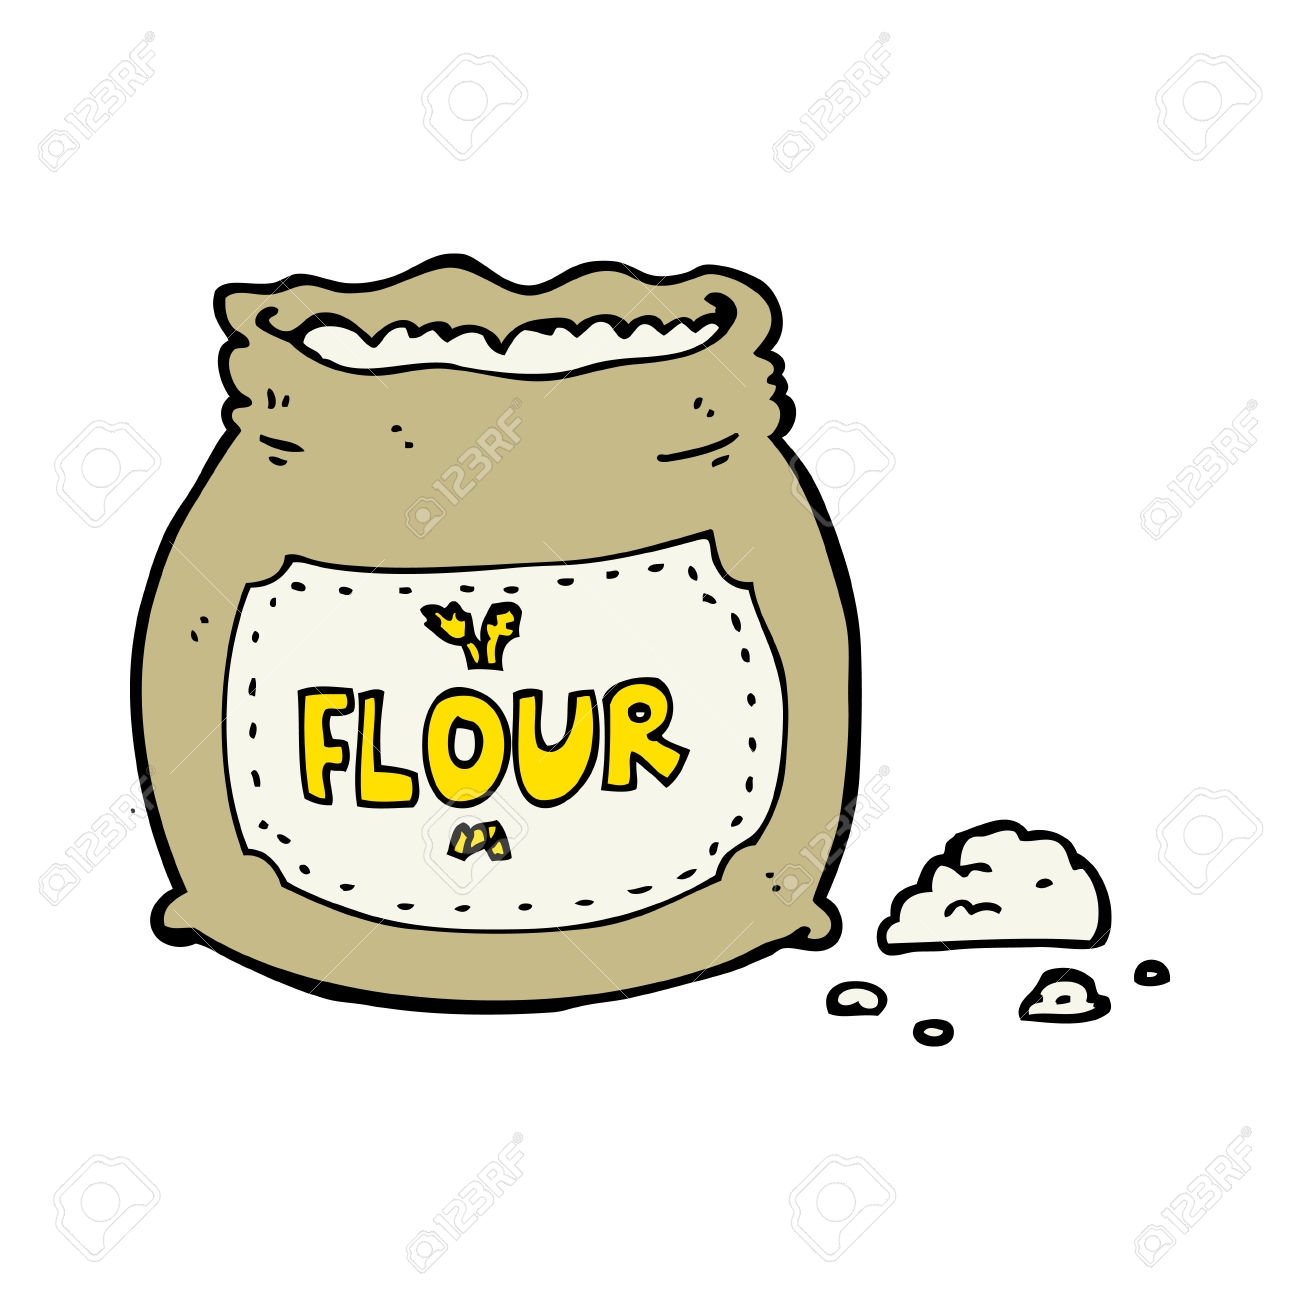 New design digital collection. Flour clipart